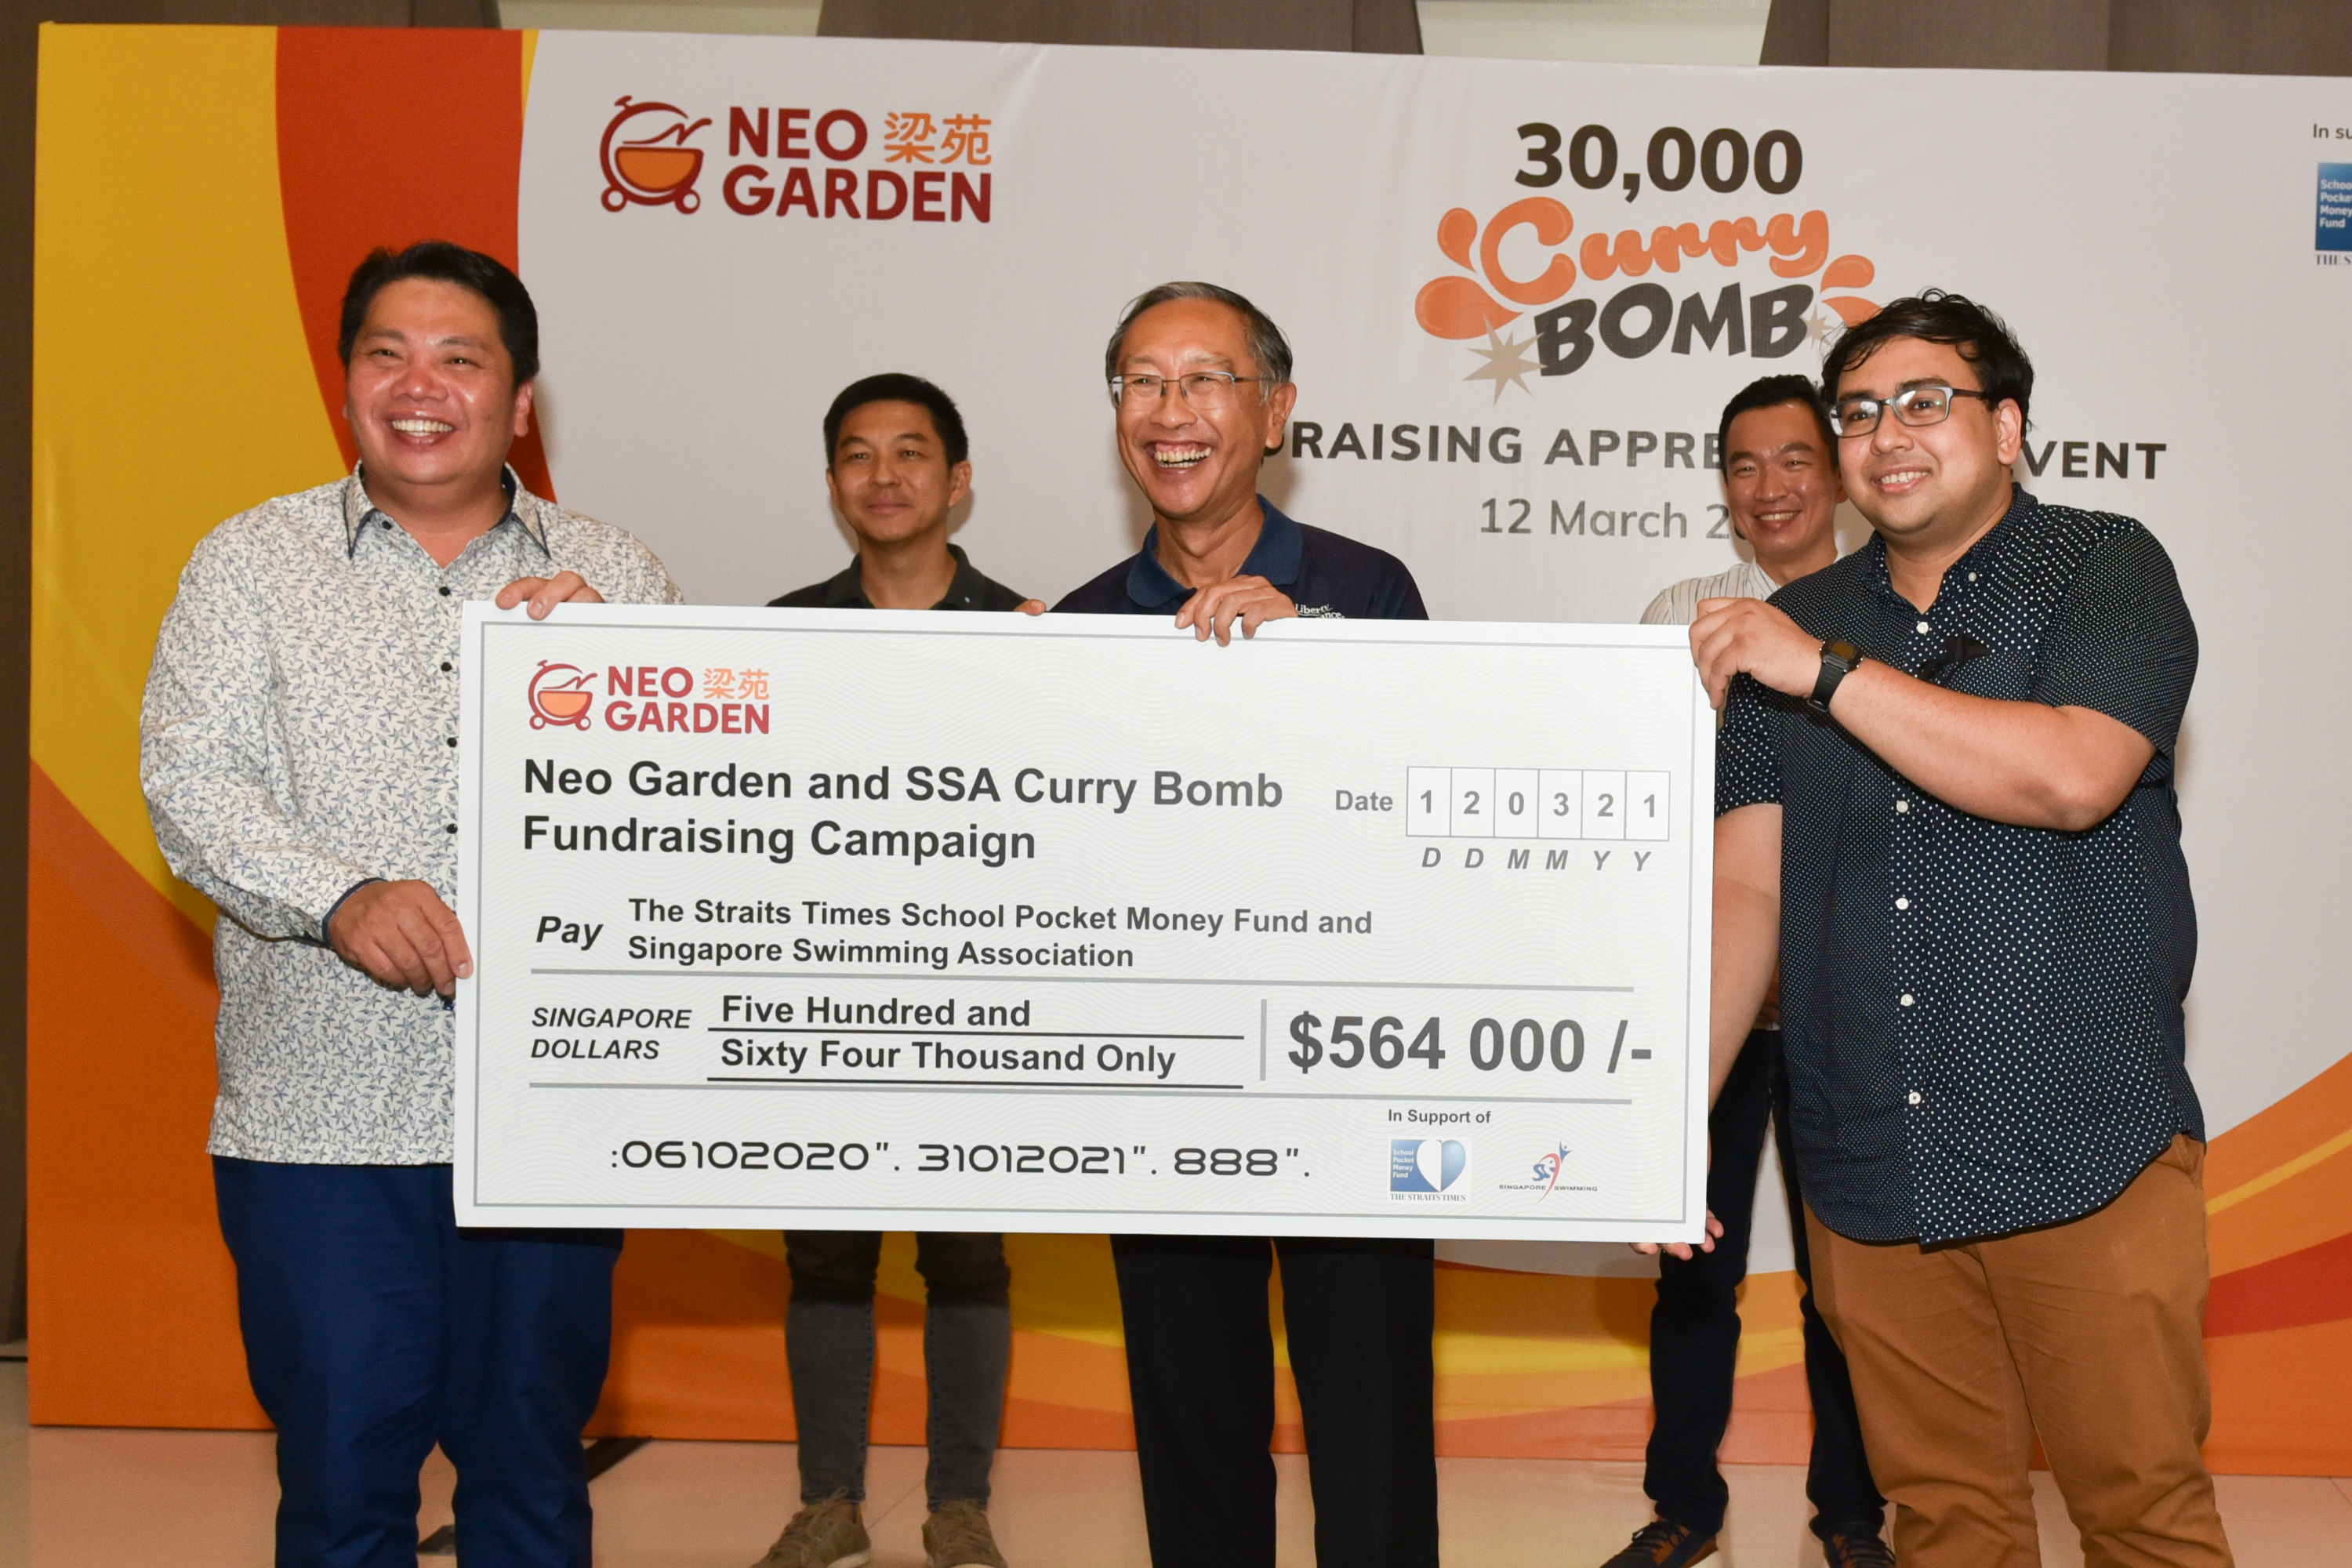 NEO GARDEN raises more than $500,000 for Singapore Swimming Assn & the Straits Times School Pocket Money Fund